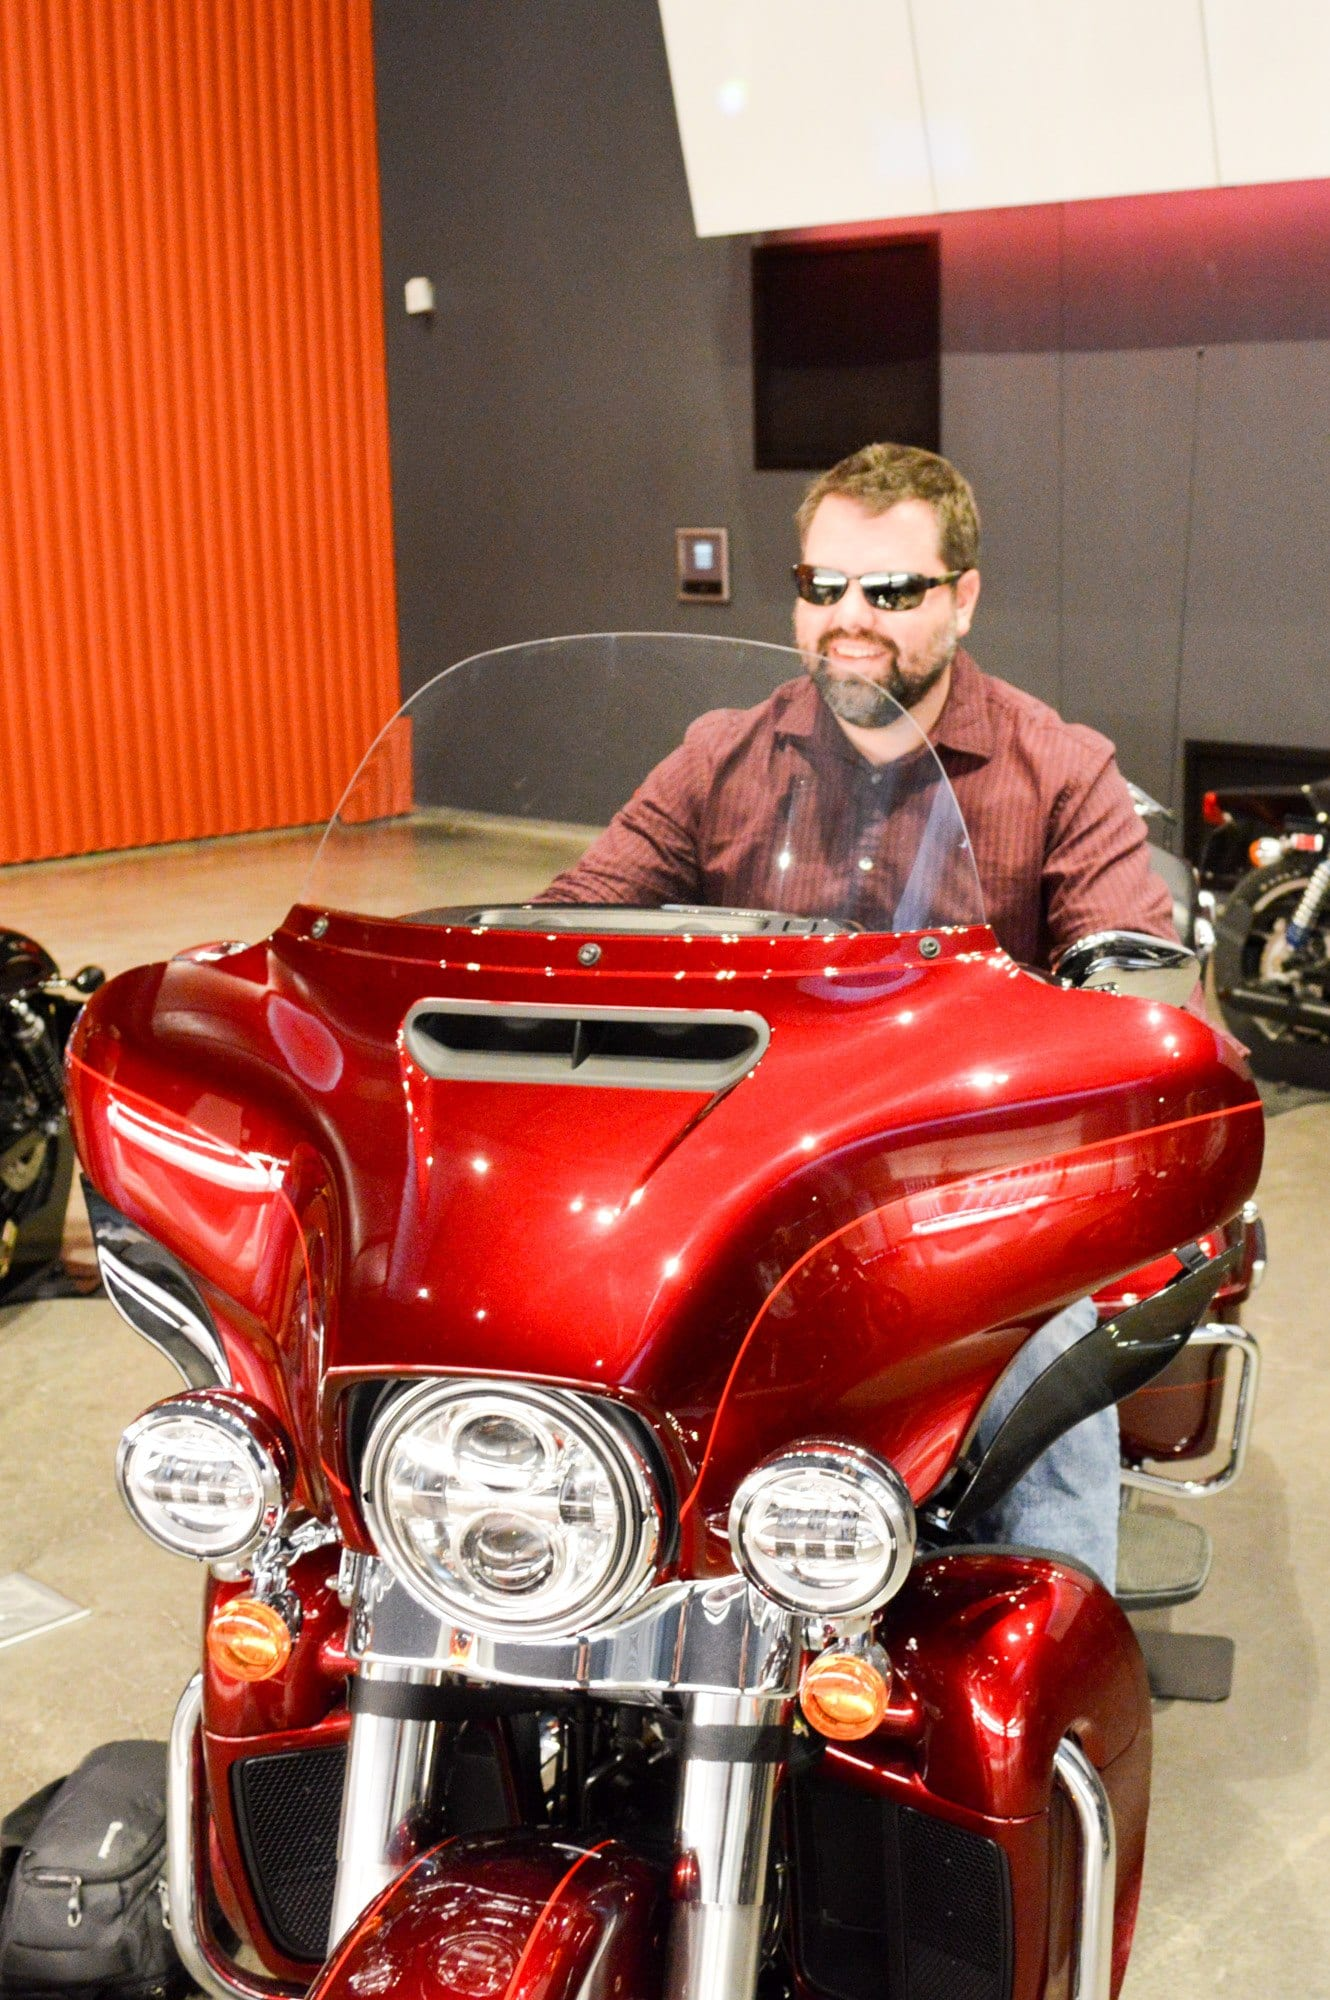 Dreaming of owning a motorcycle at the Harley Davidson Museum (Photo credit: Bryan Richards)